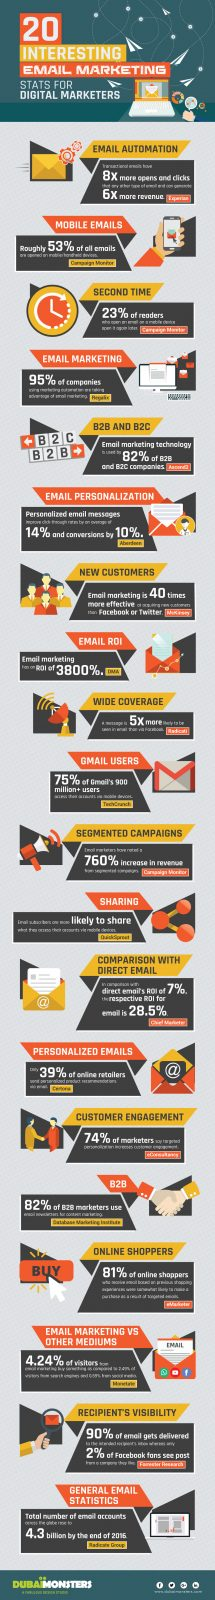 20 Email Marketing Stats Useful for Digital Marketers